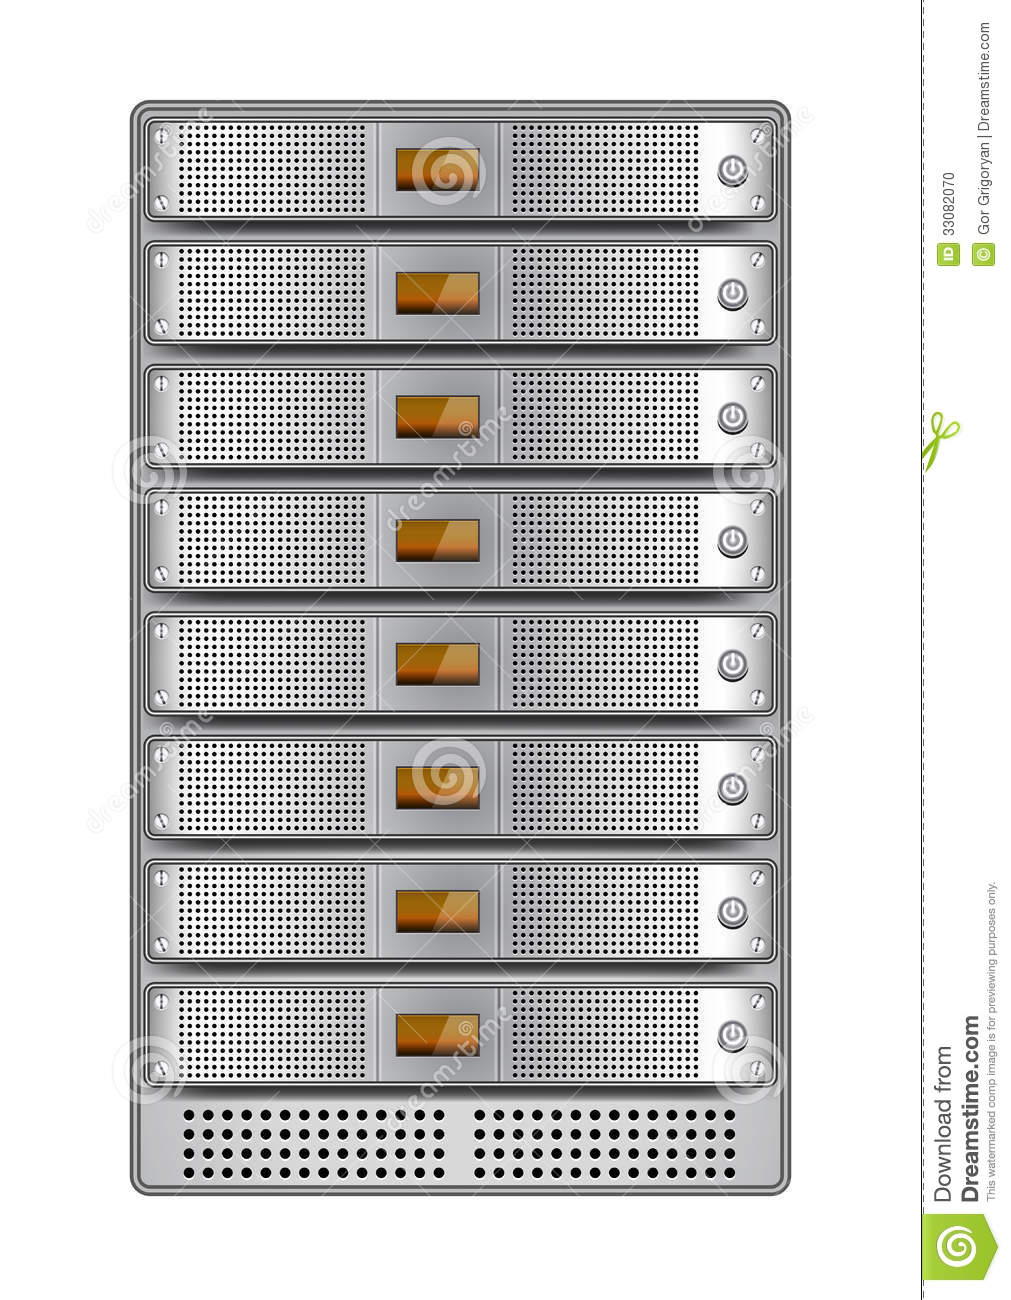 computer rack clip art - photo #16